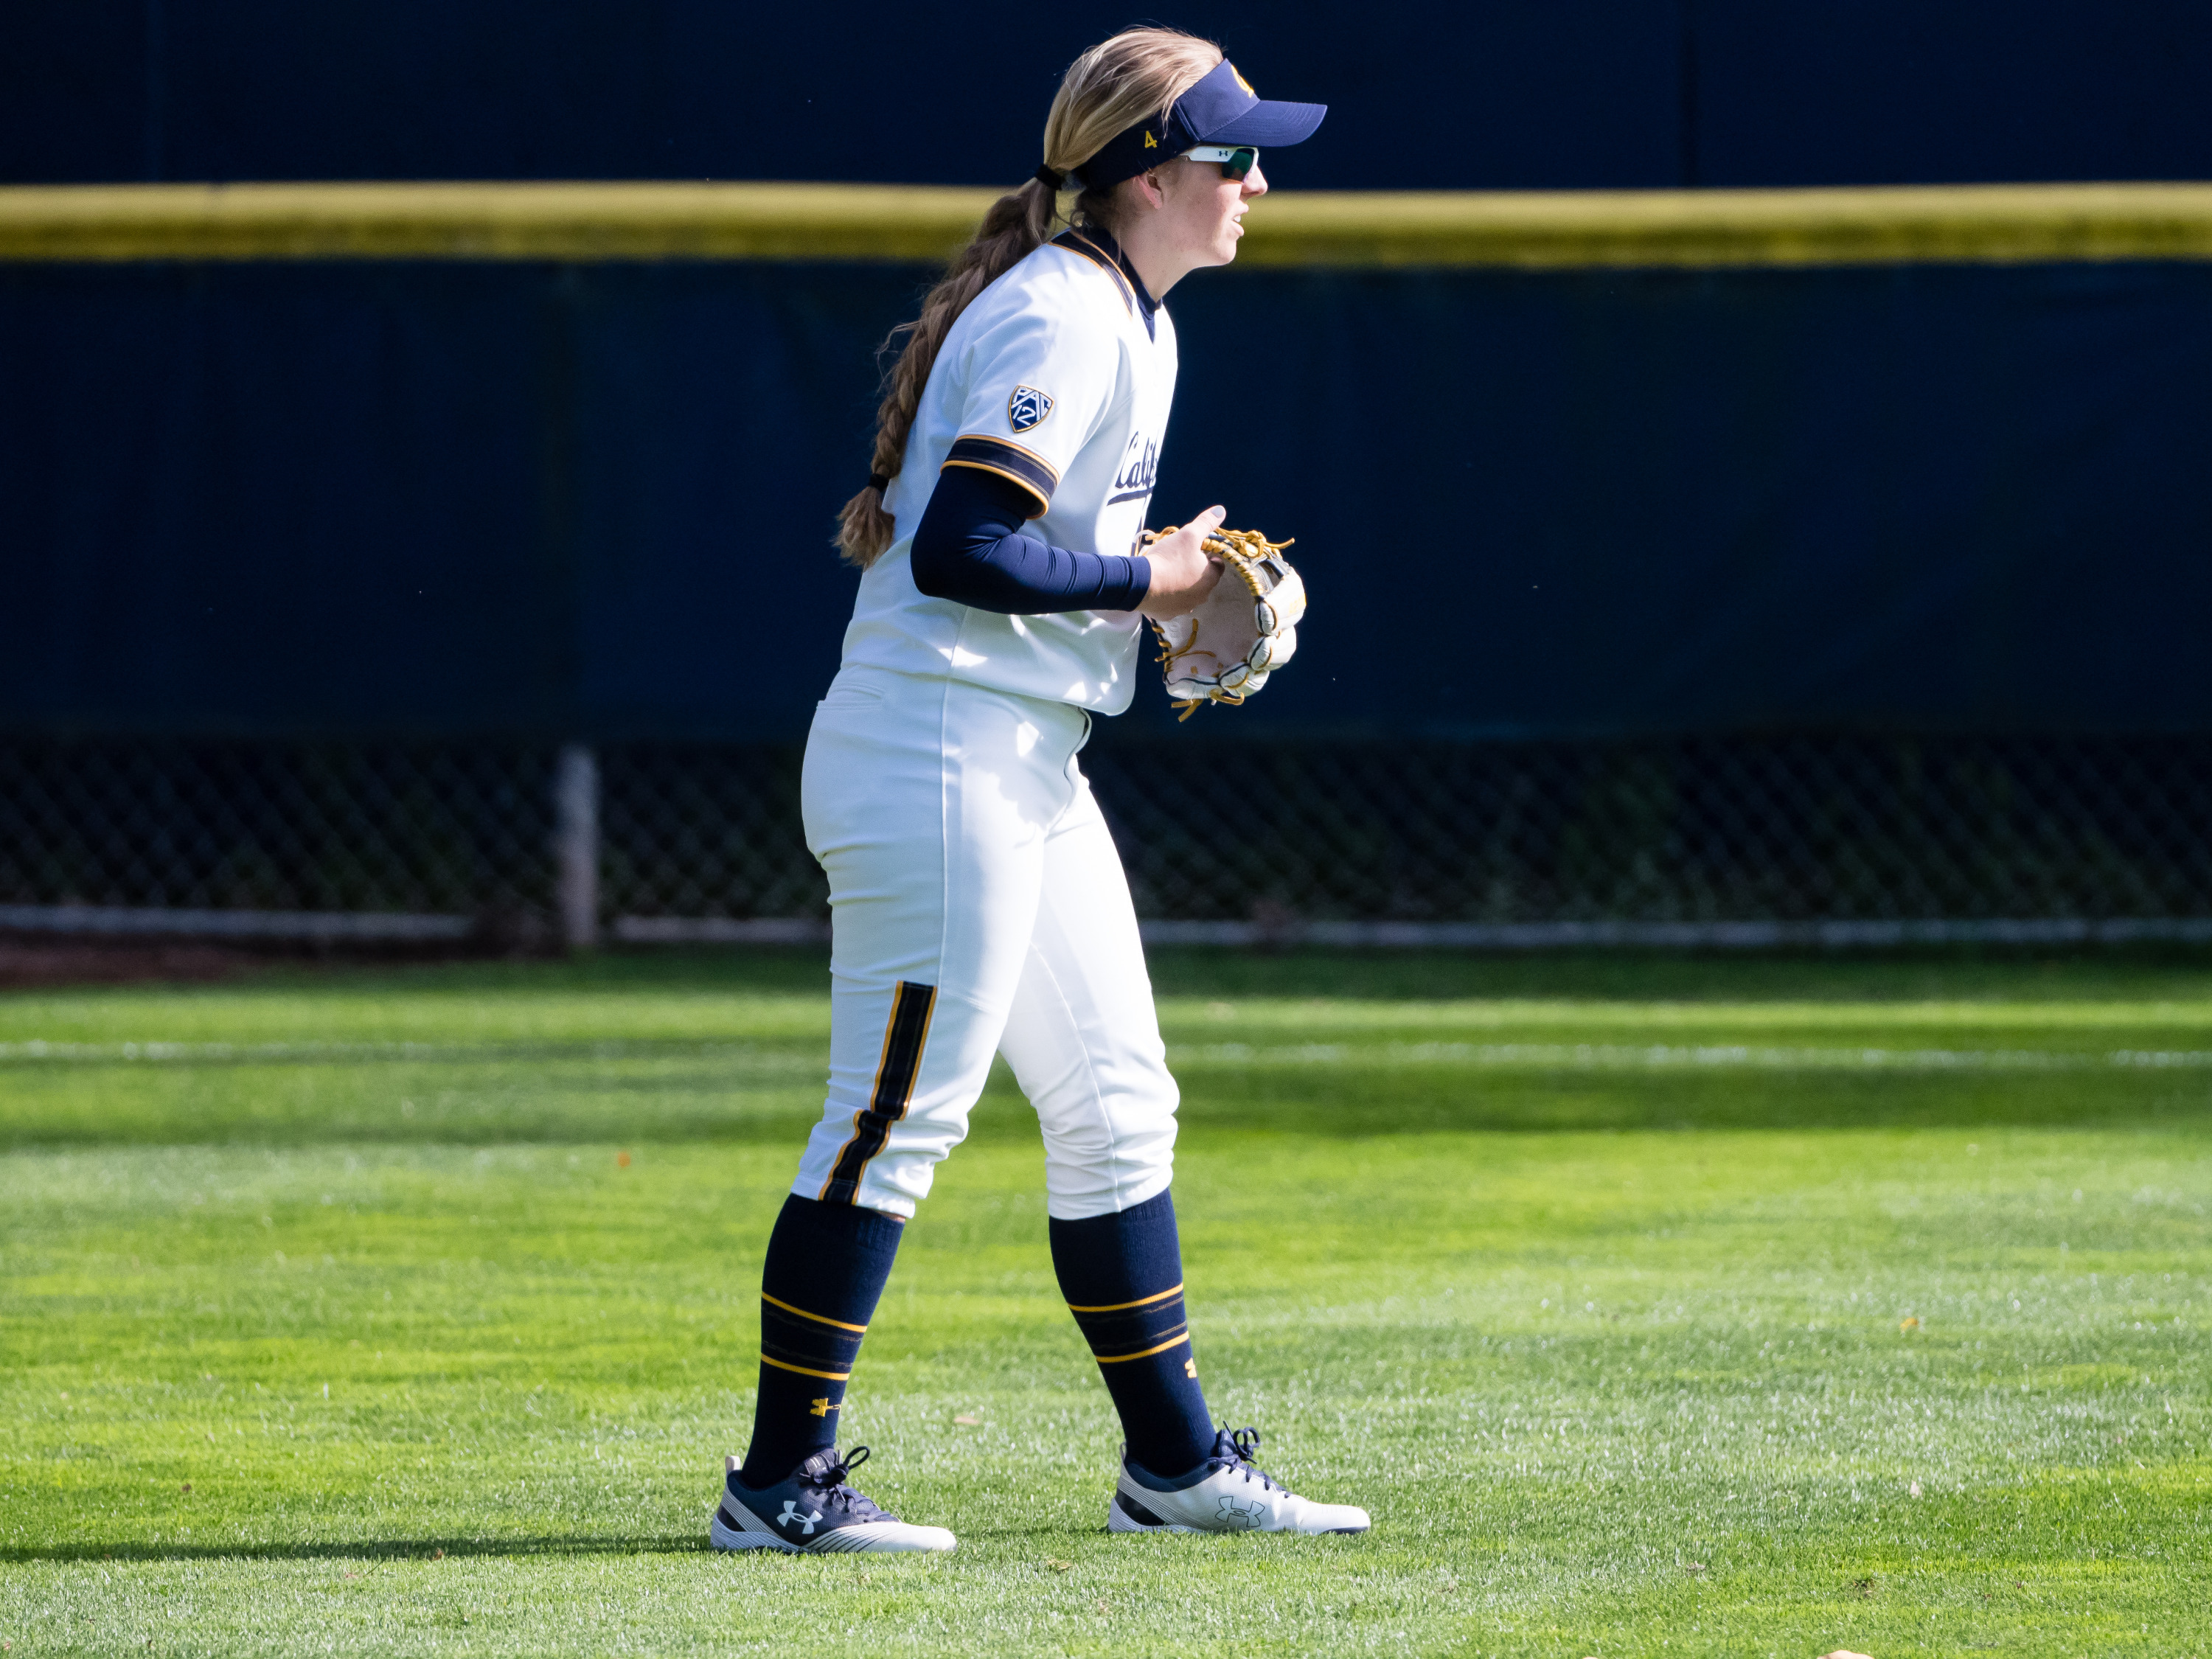 Bradie Fillmore this past season with the Golden Bears